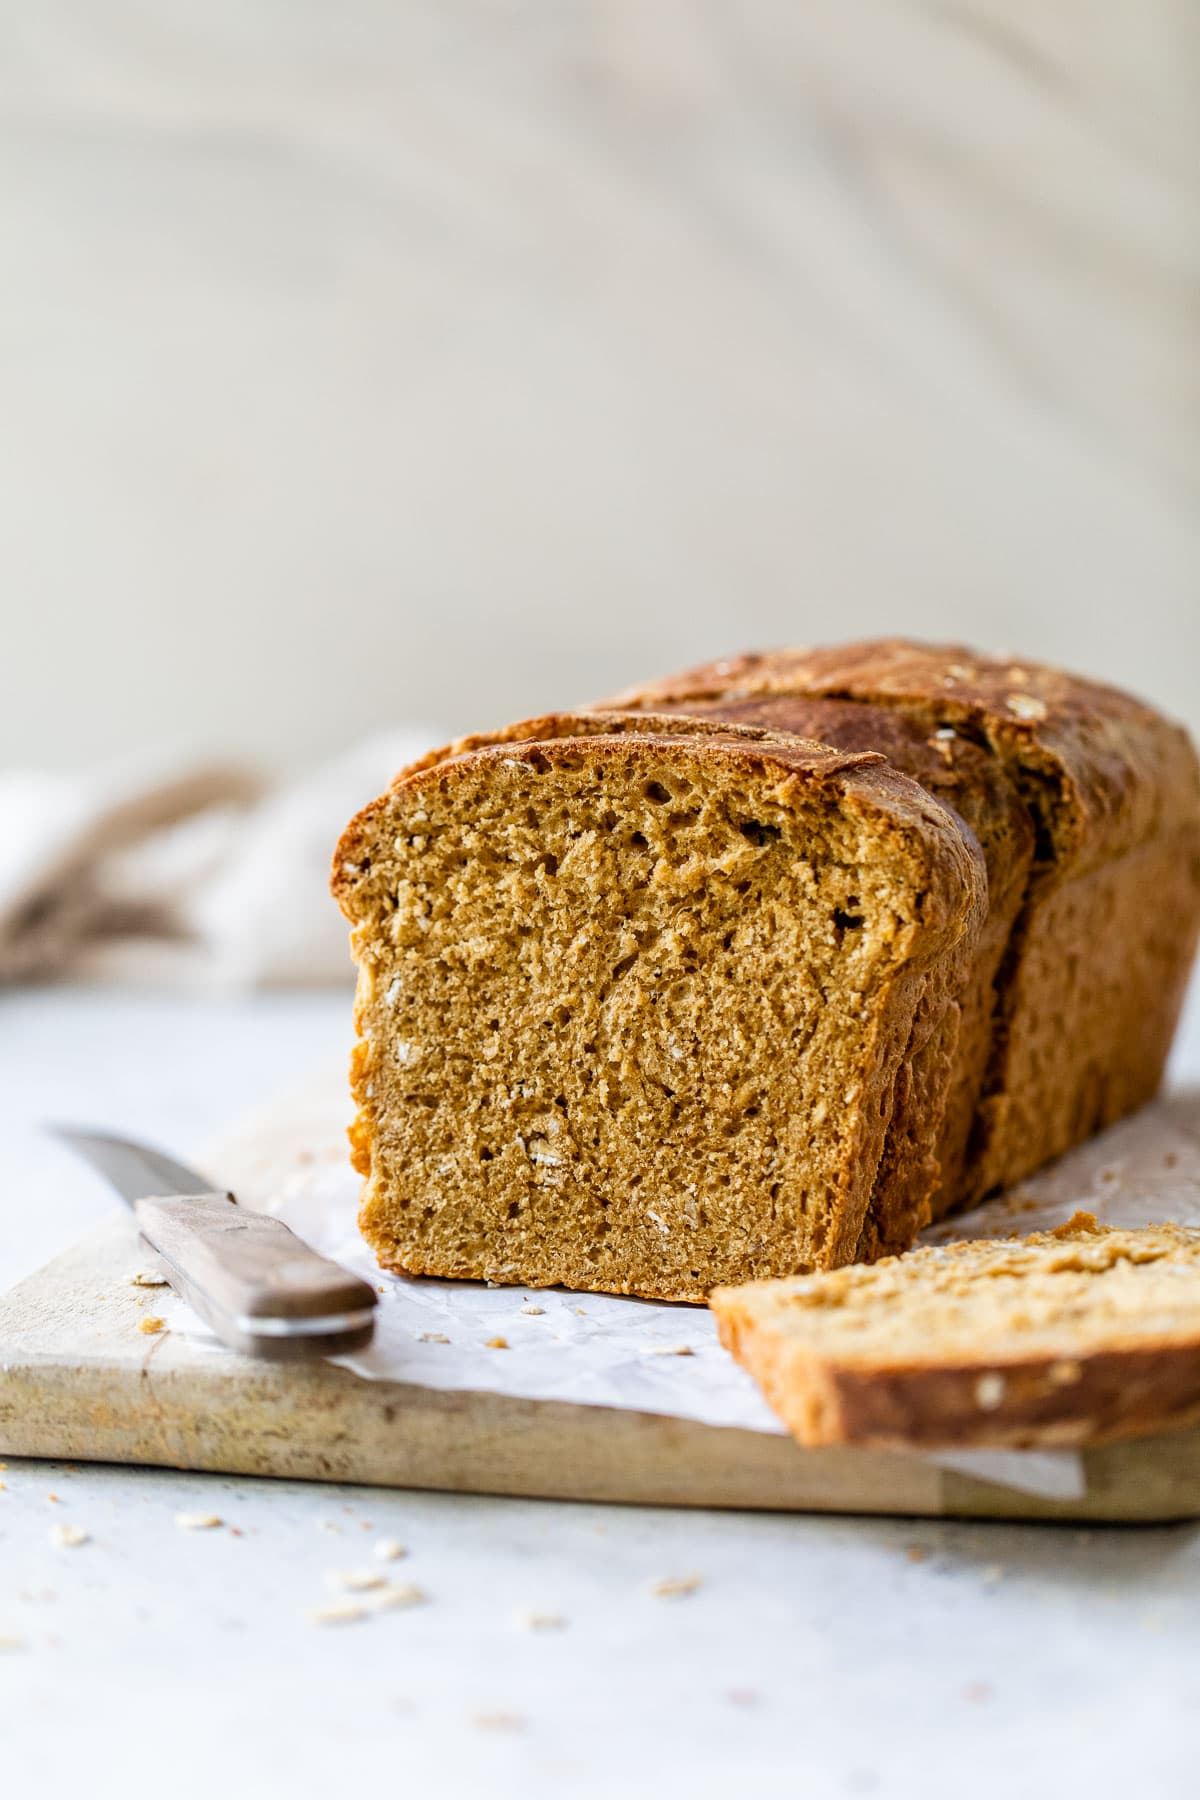 a loaf of fluffy homemade oatmeal bread cut into slices